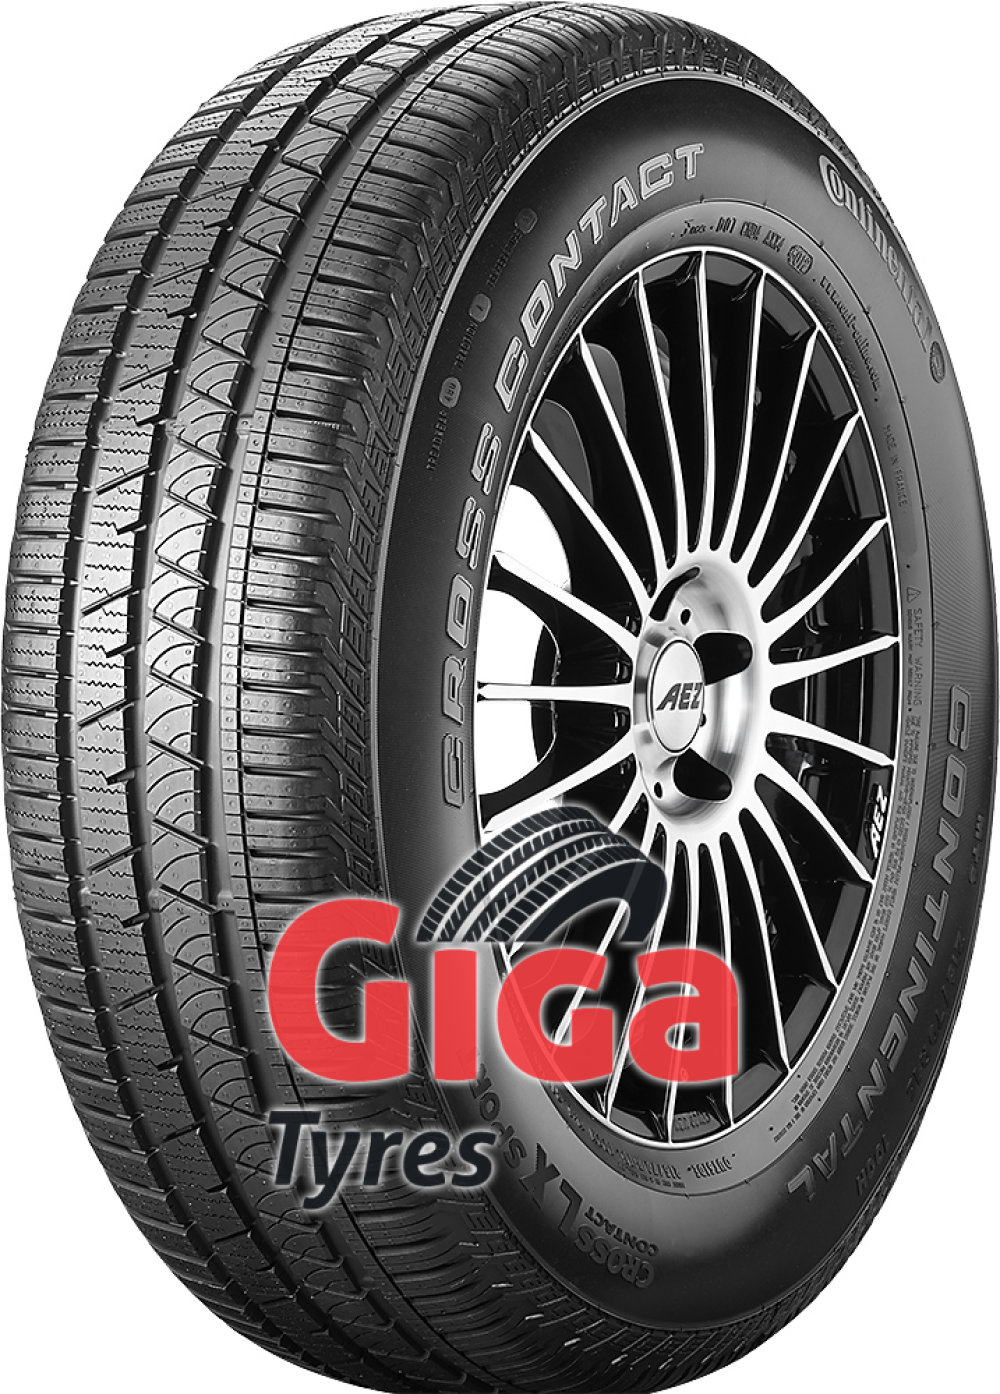 Continental ContiCrossContact LX Sport ( 245/45 R20 103V XL LR, with kerbing rib )